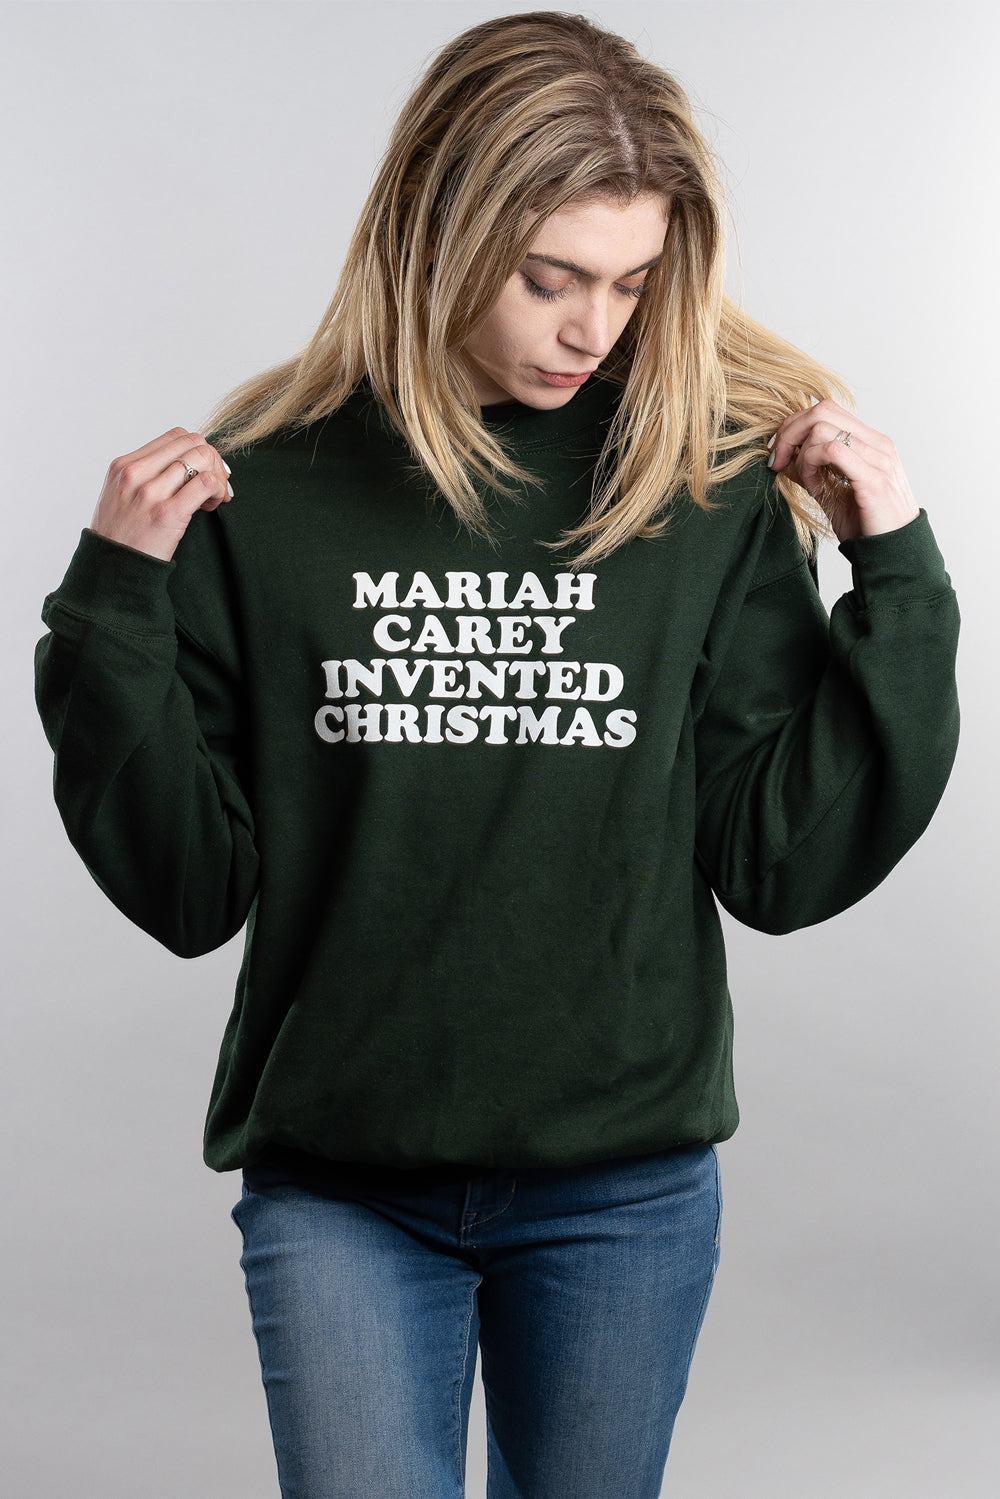 Mariah Carey Invented Christmas Sweatshirt